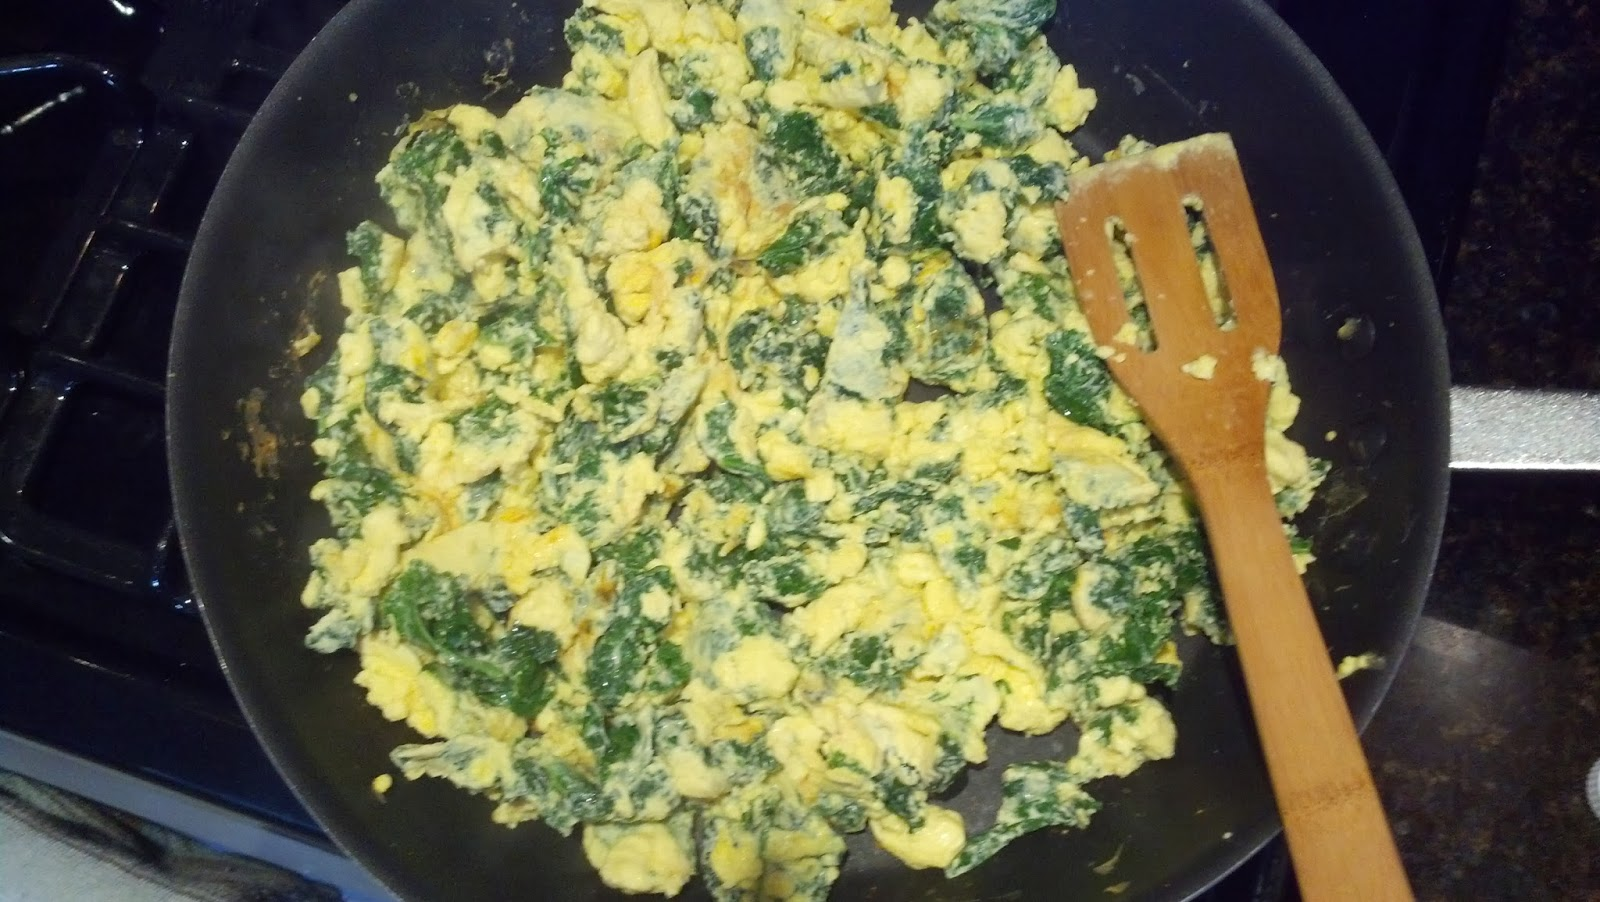 Cranky fitness kale and egg white scramble easy recipe for the kale and egg white scramble easy recipe for the culinarily challenged forumfinder Gallery